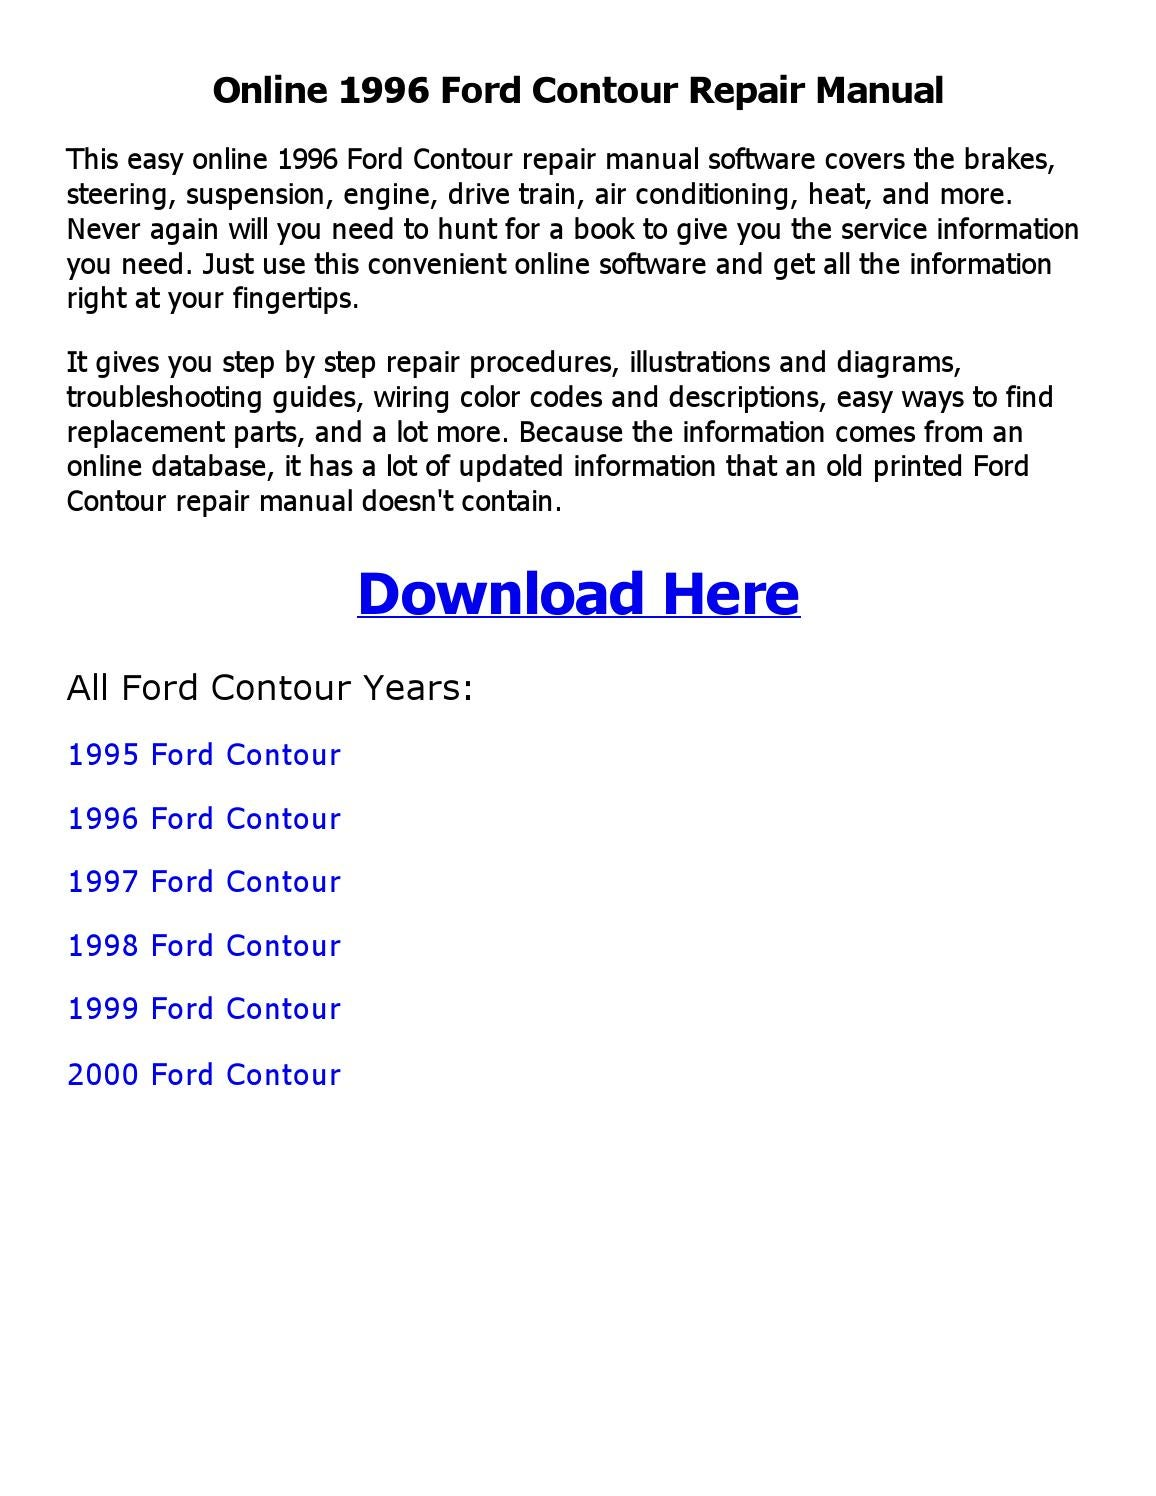 1996 Ford Contour Repair Manual Online By Sajib Issuu 2000 Se Fuse Diagram